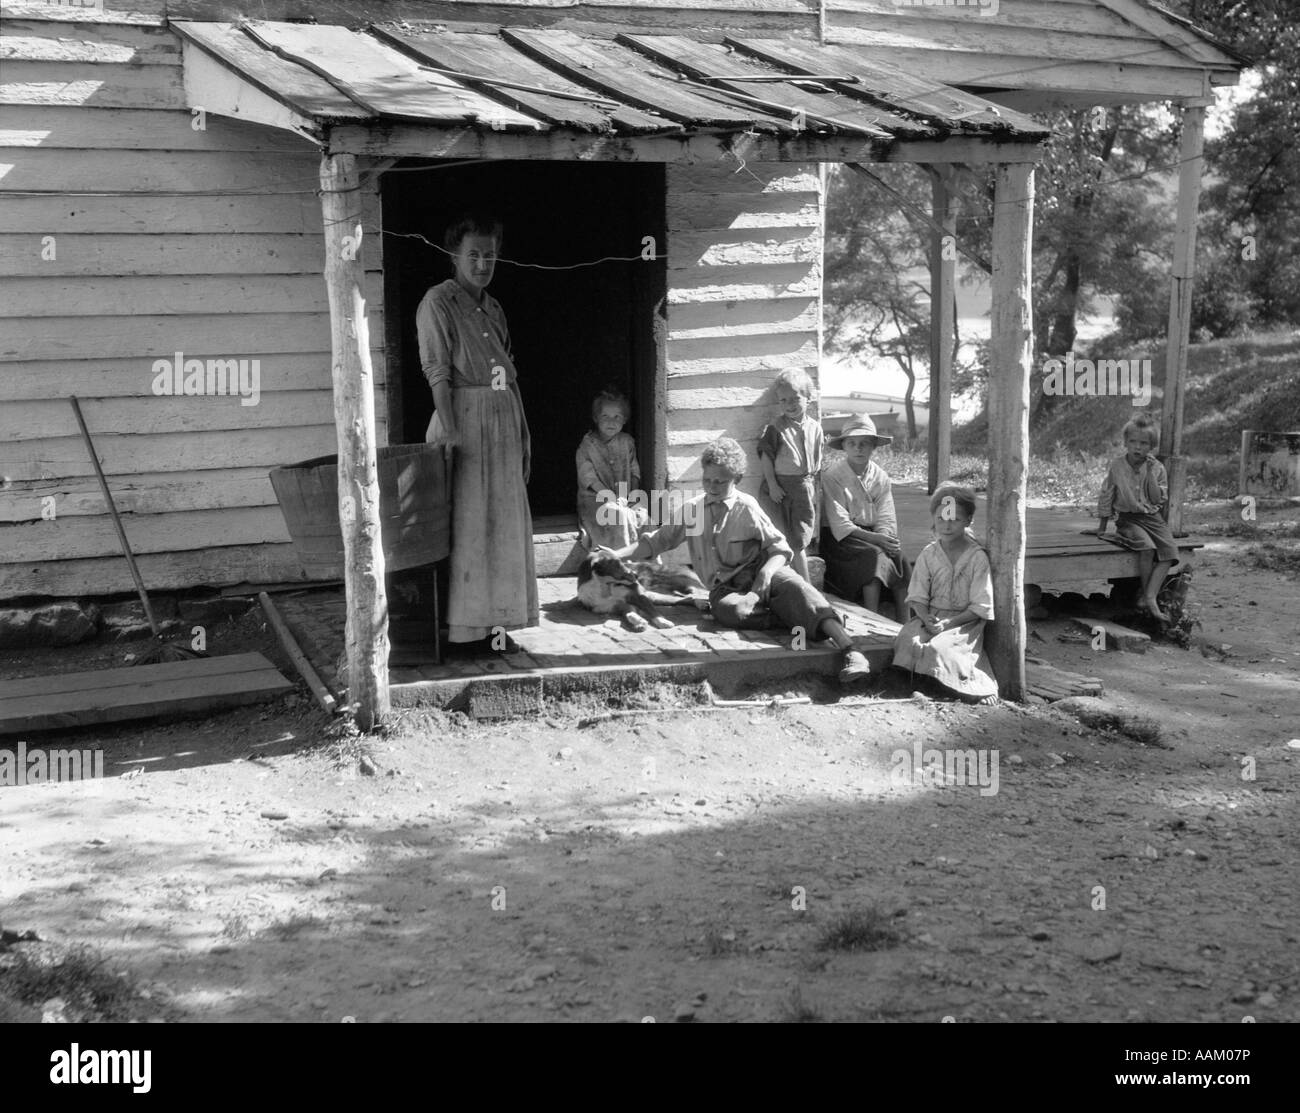 1930s 1940s Farm Woman With Six Children On Porch Of Clap